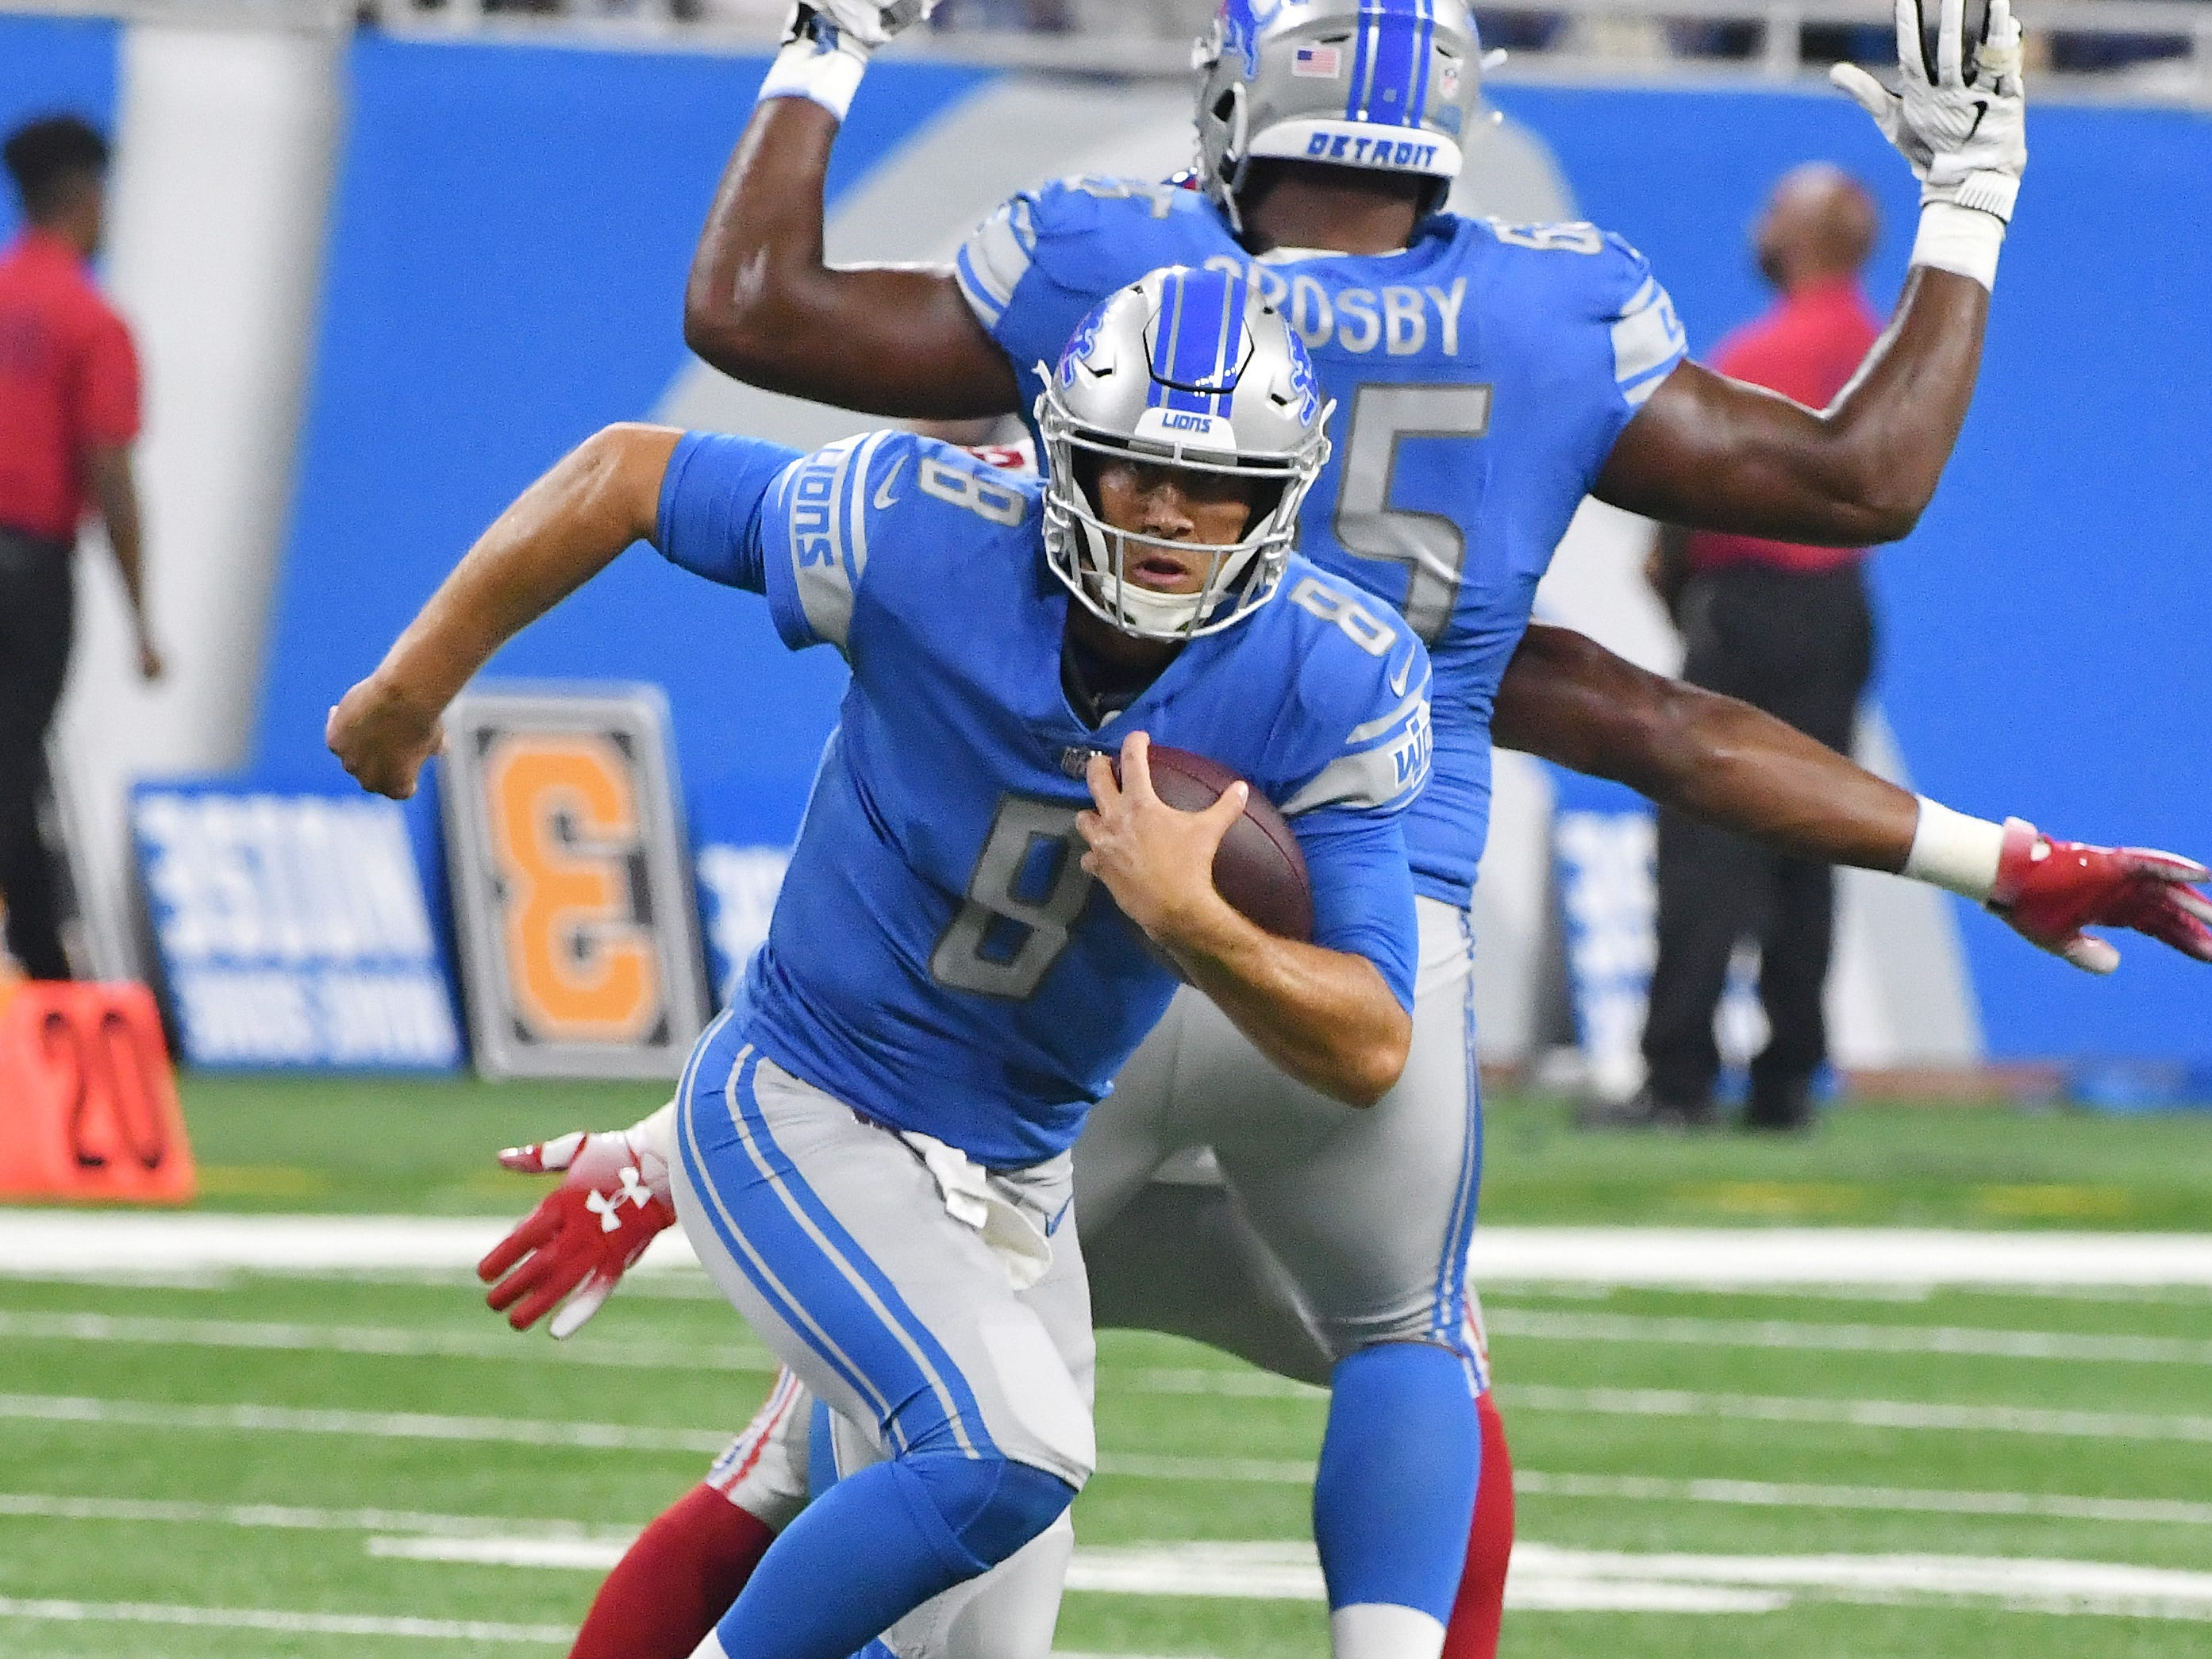 Lions quarterback scrambles out of the pocket for a gain in the third quarter.